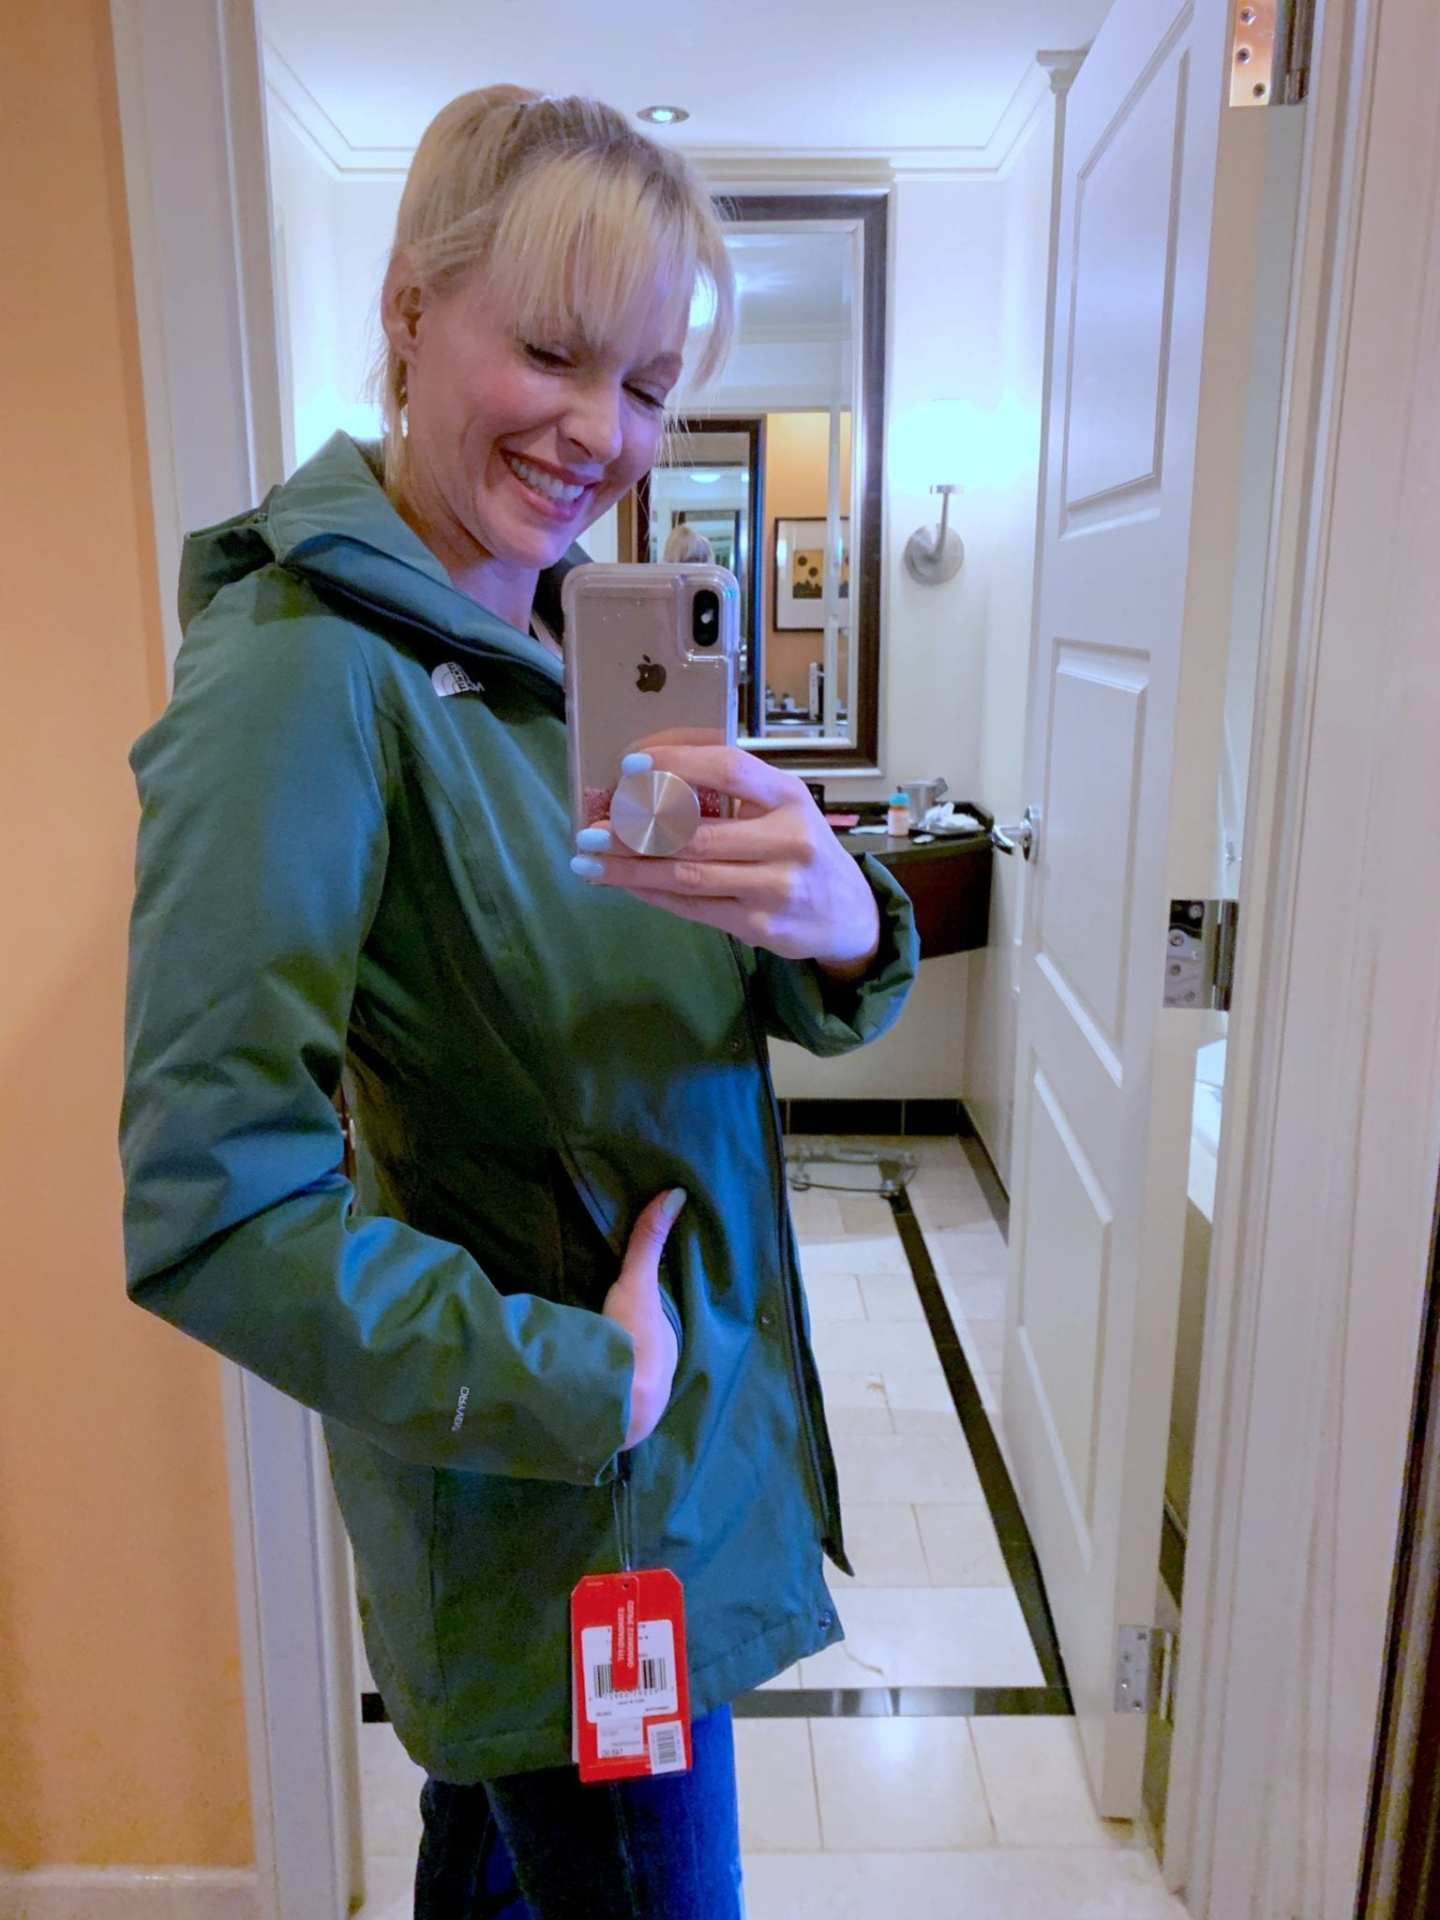 Womens North Face Jacket on Sale. Green long North Face jacket with hood at Nordstrom Anniversary Sale.